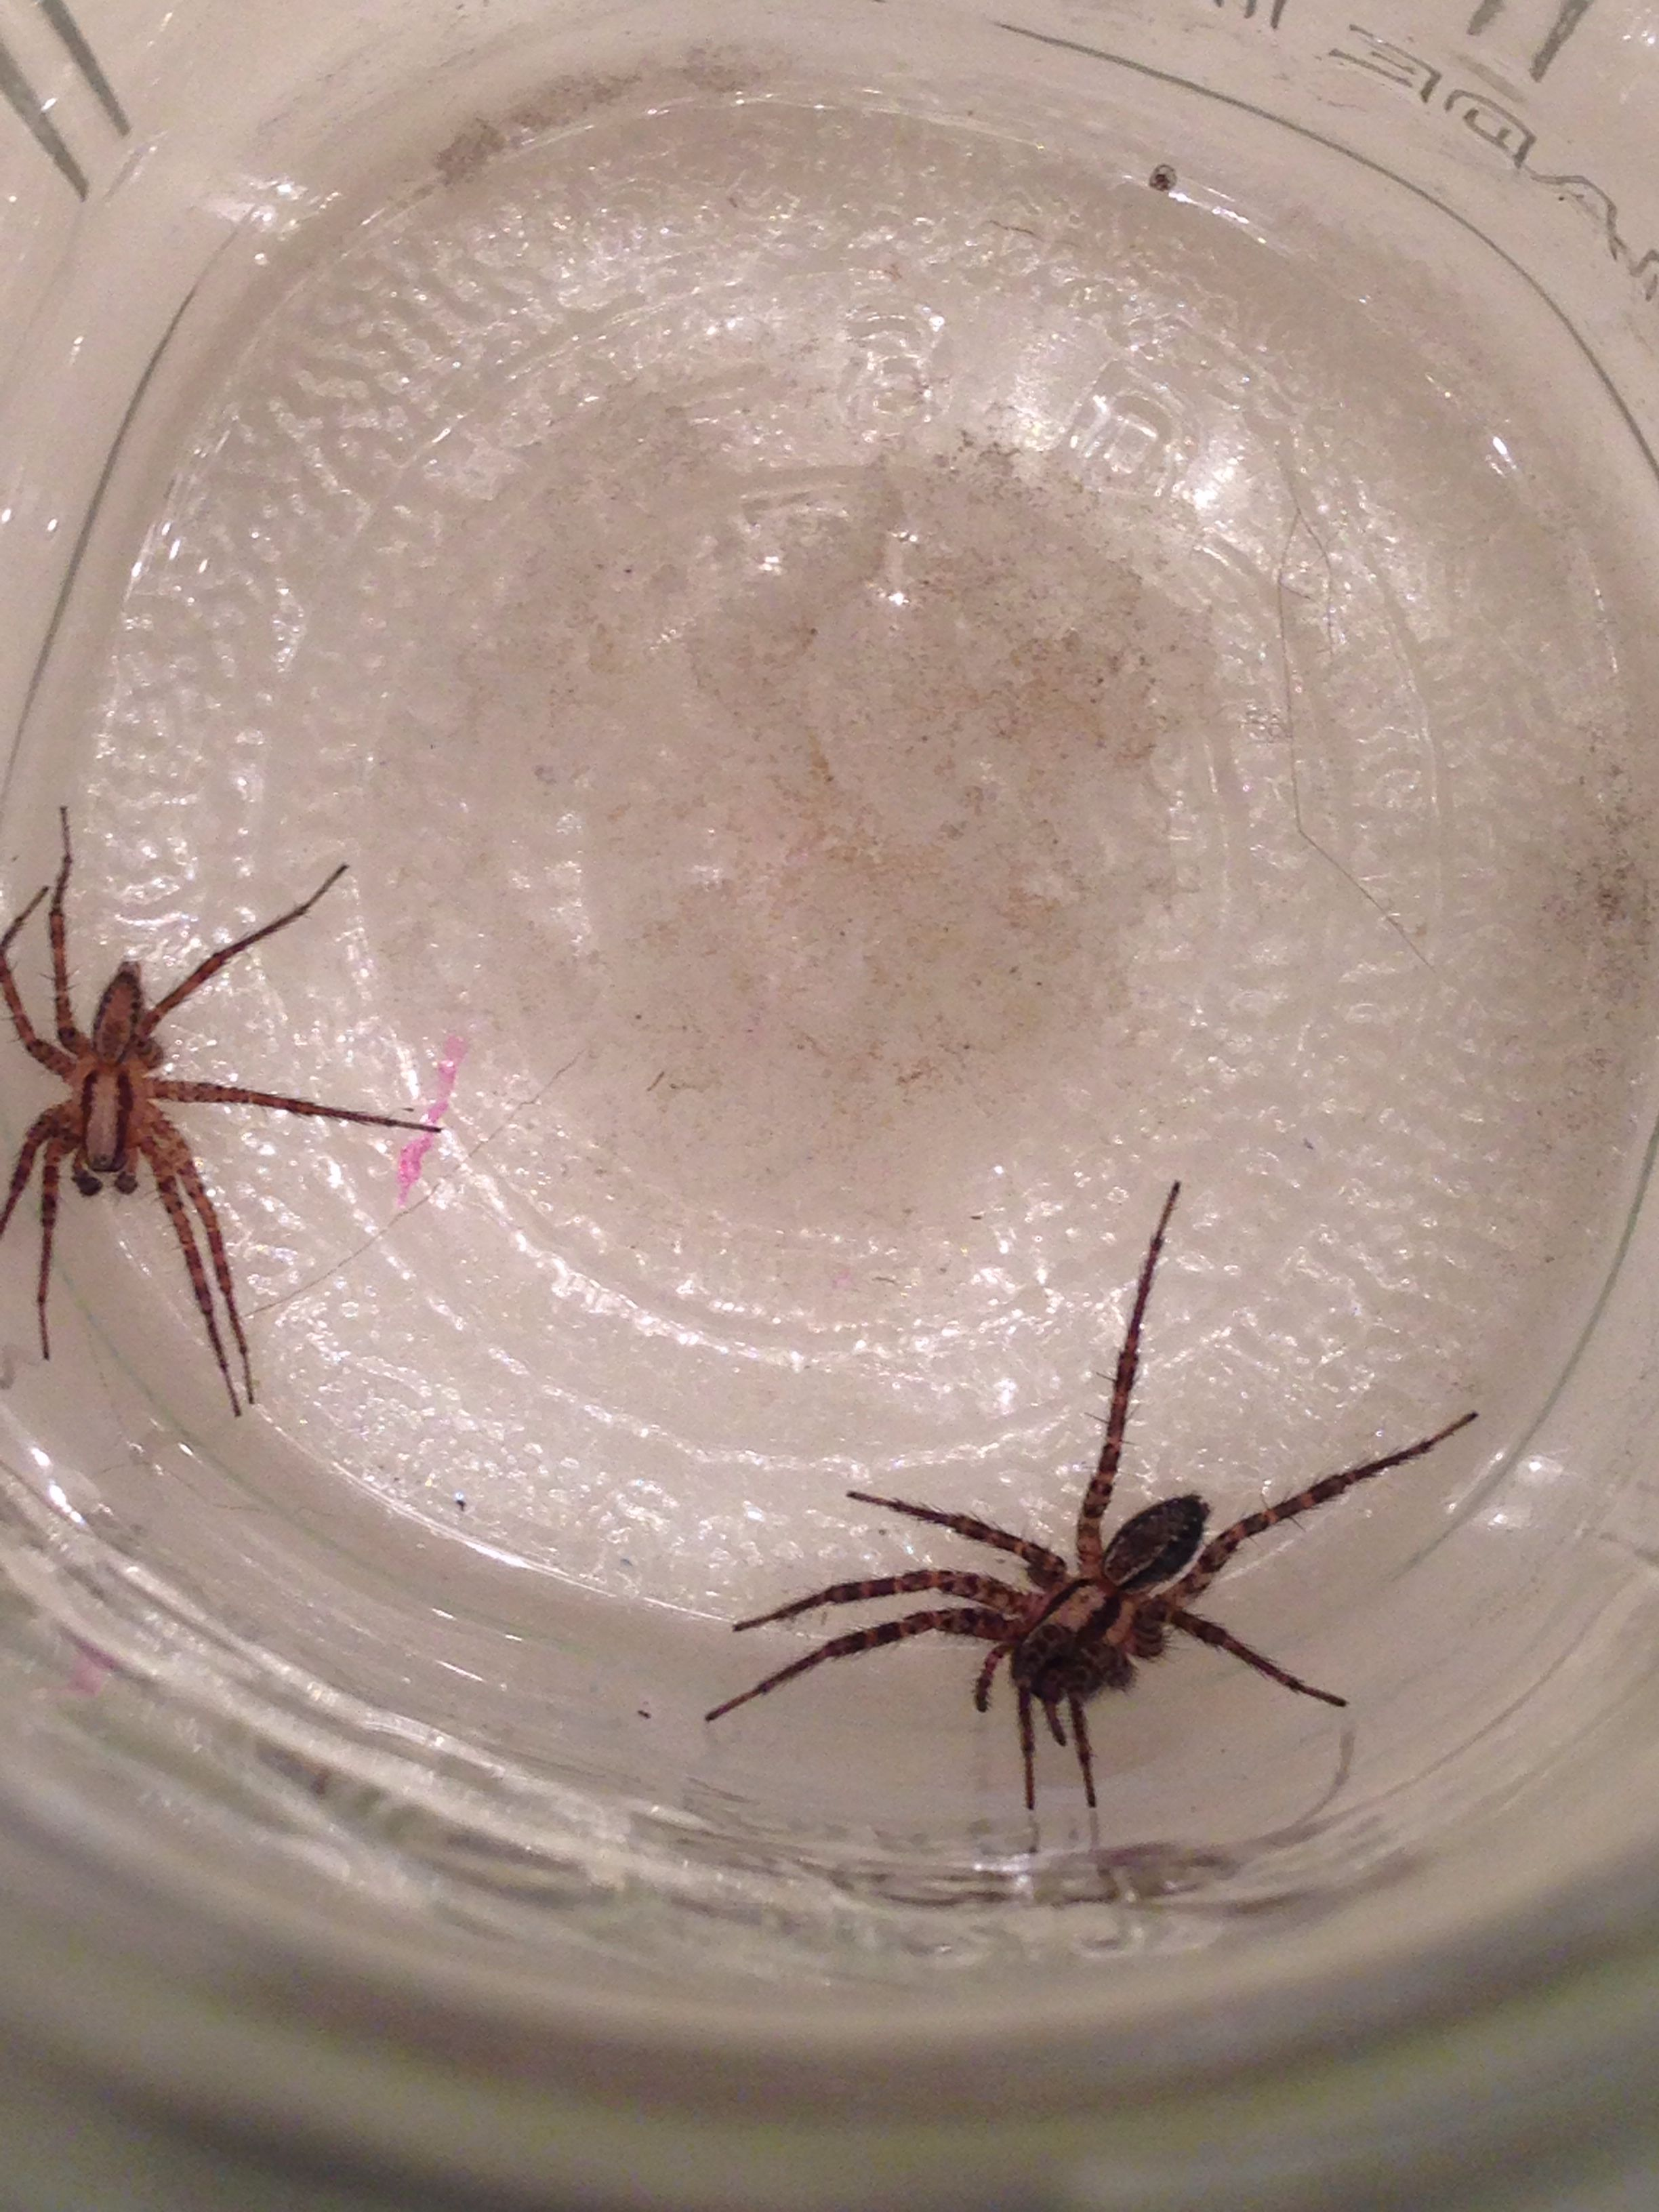 More gross spiders in my room:(